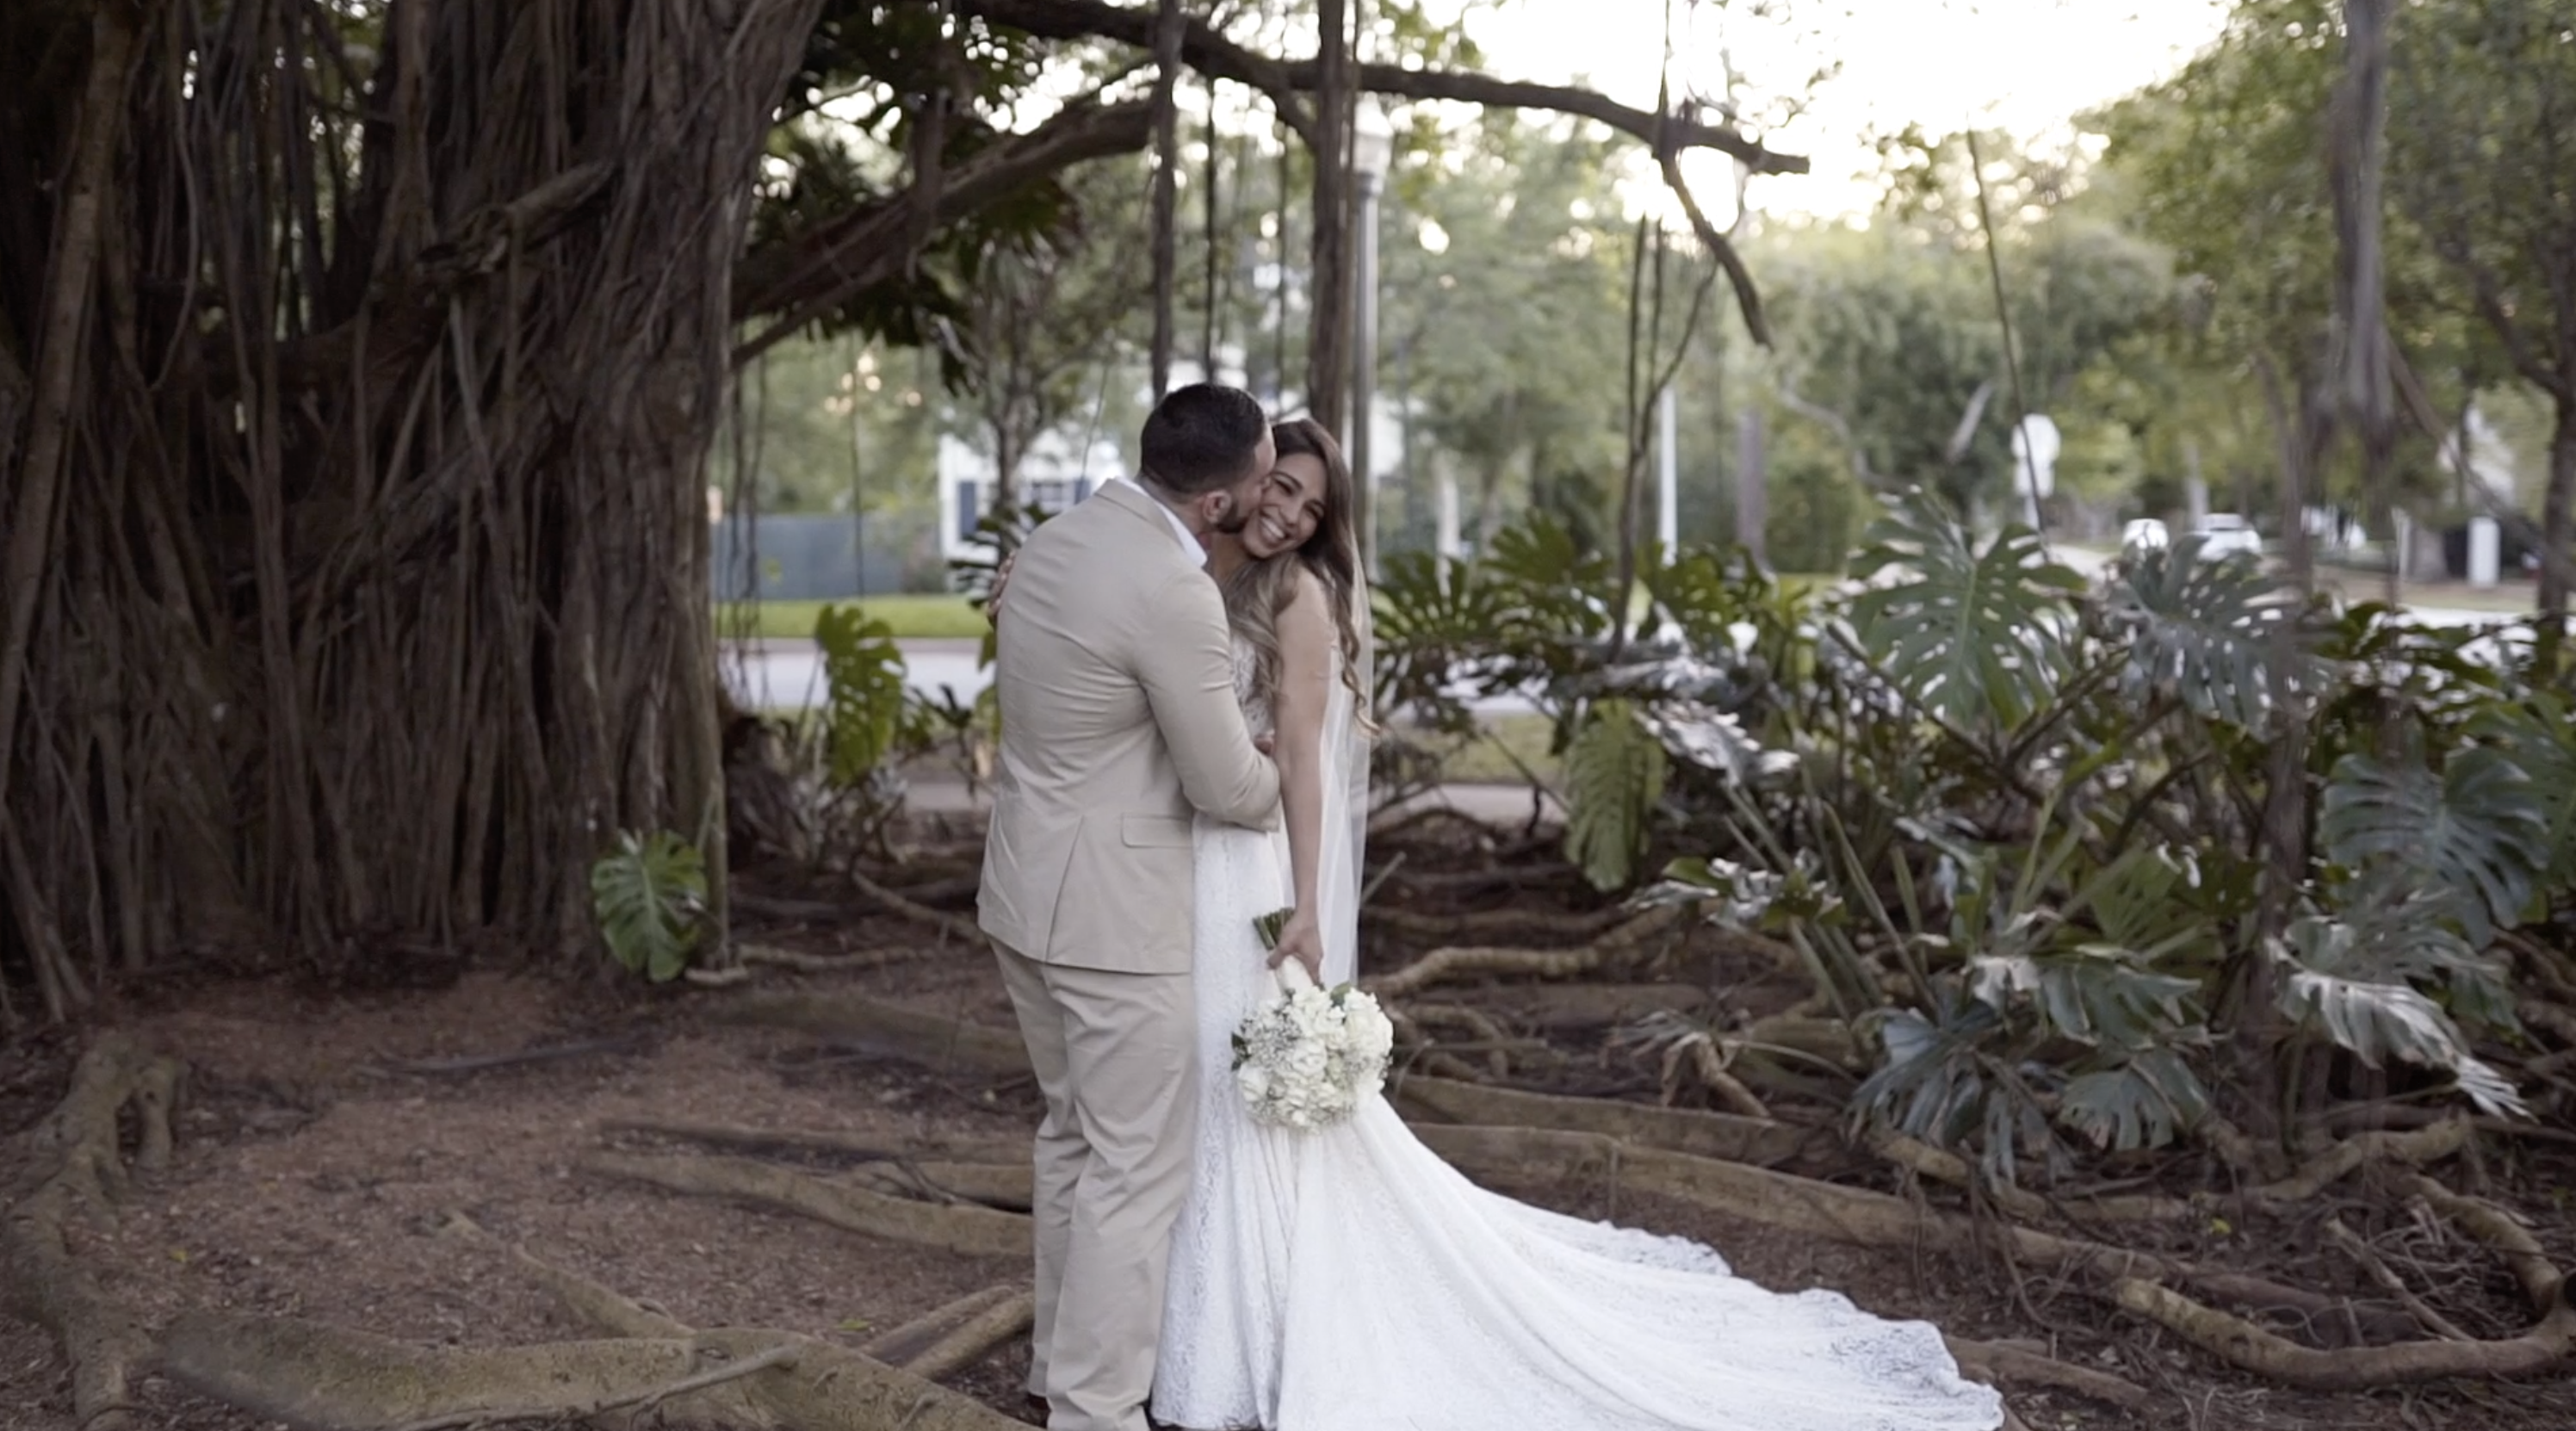 Ashley + Caleb | Miami, Florida | Bulla Gastrobar